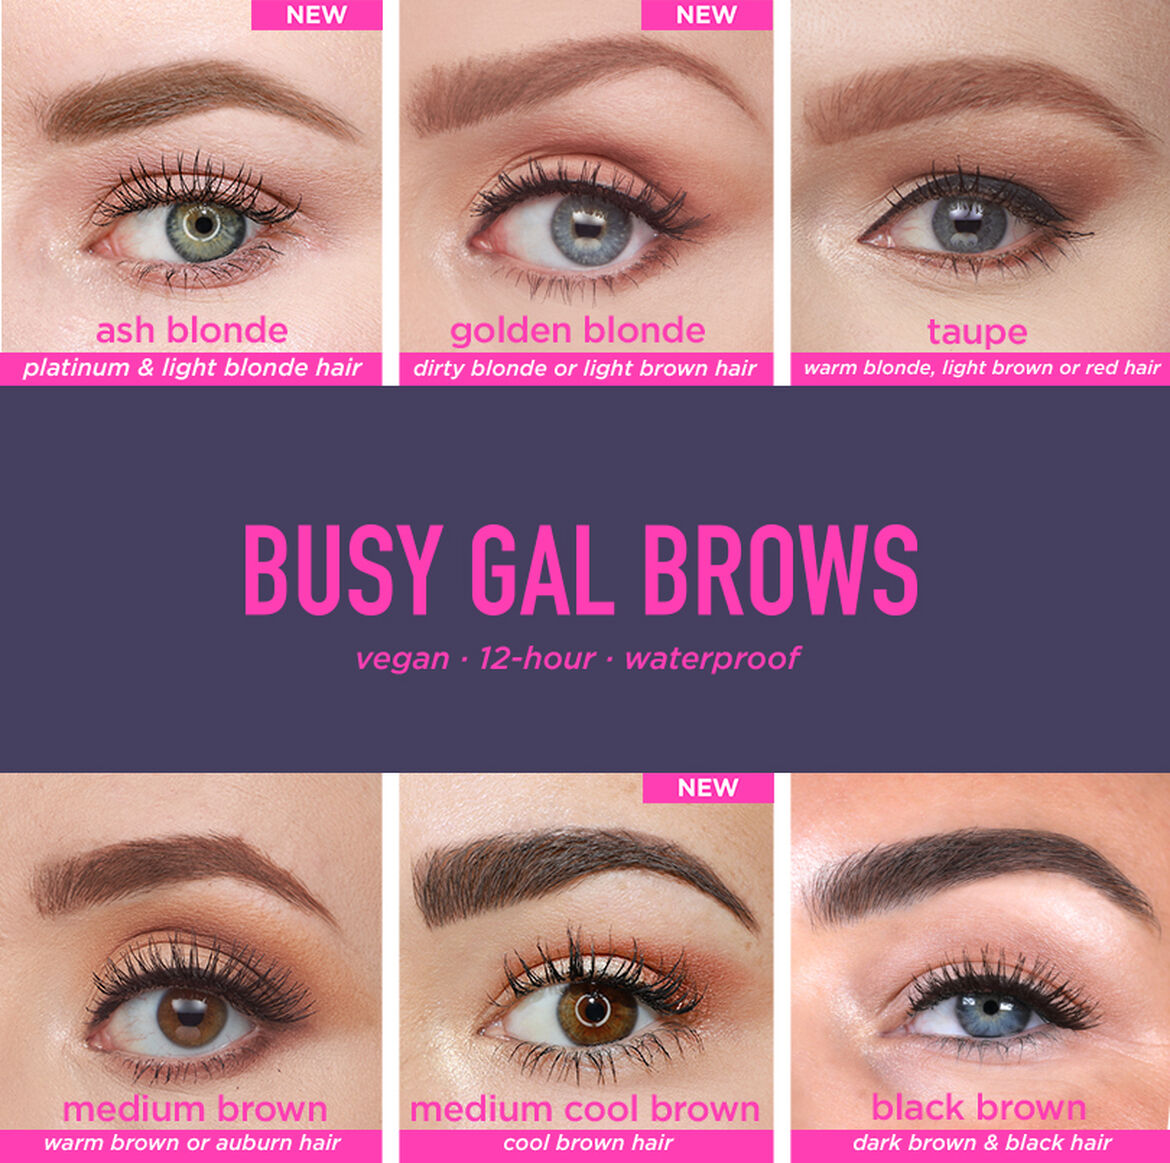 Busy Gal BROWS Tinted Brow Gel by Tarte #5